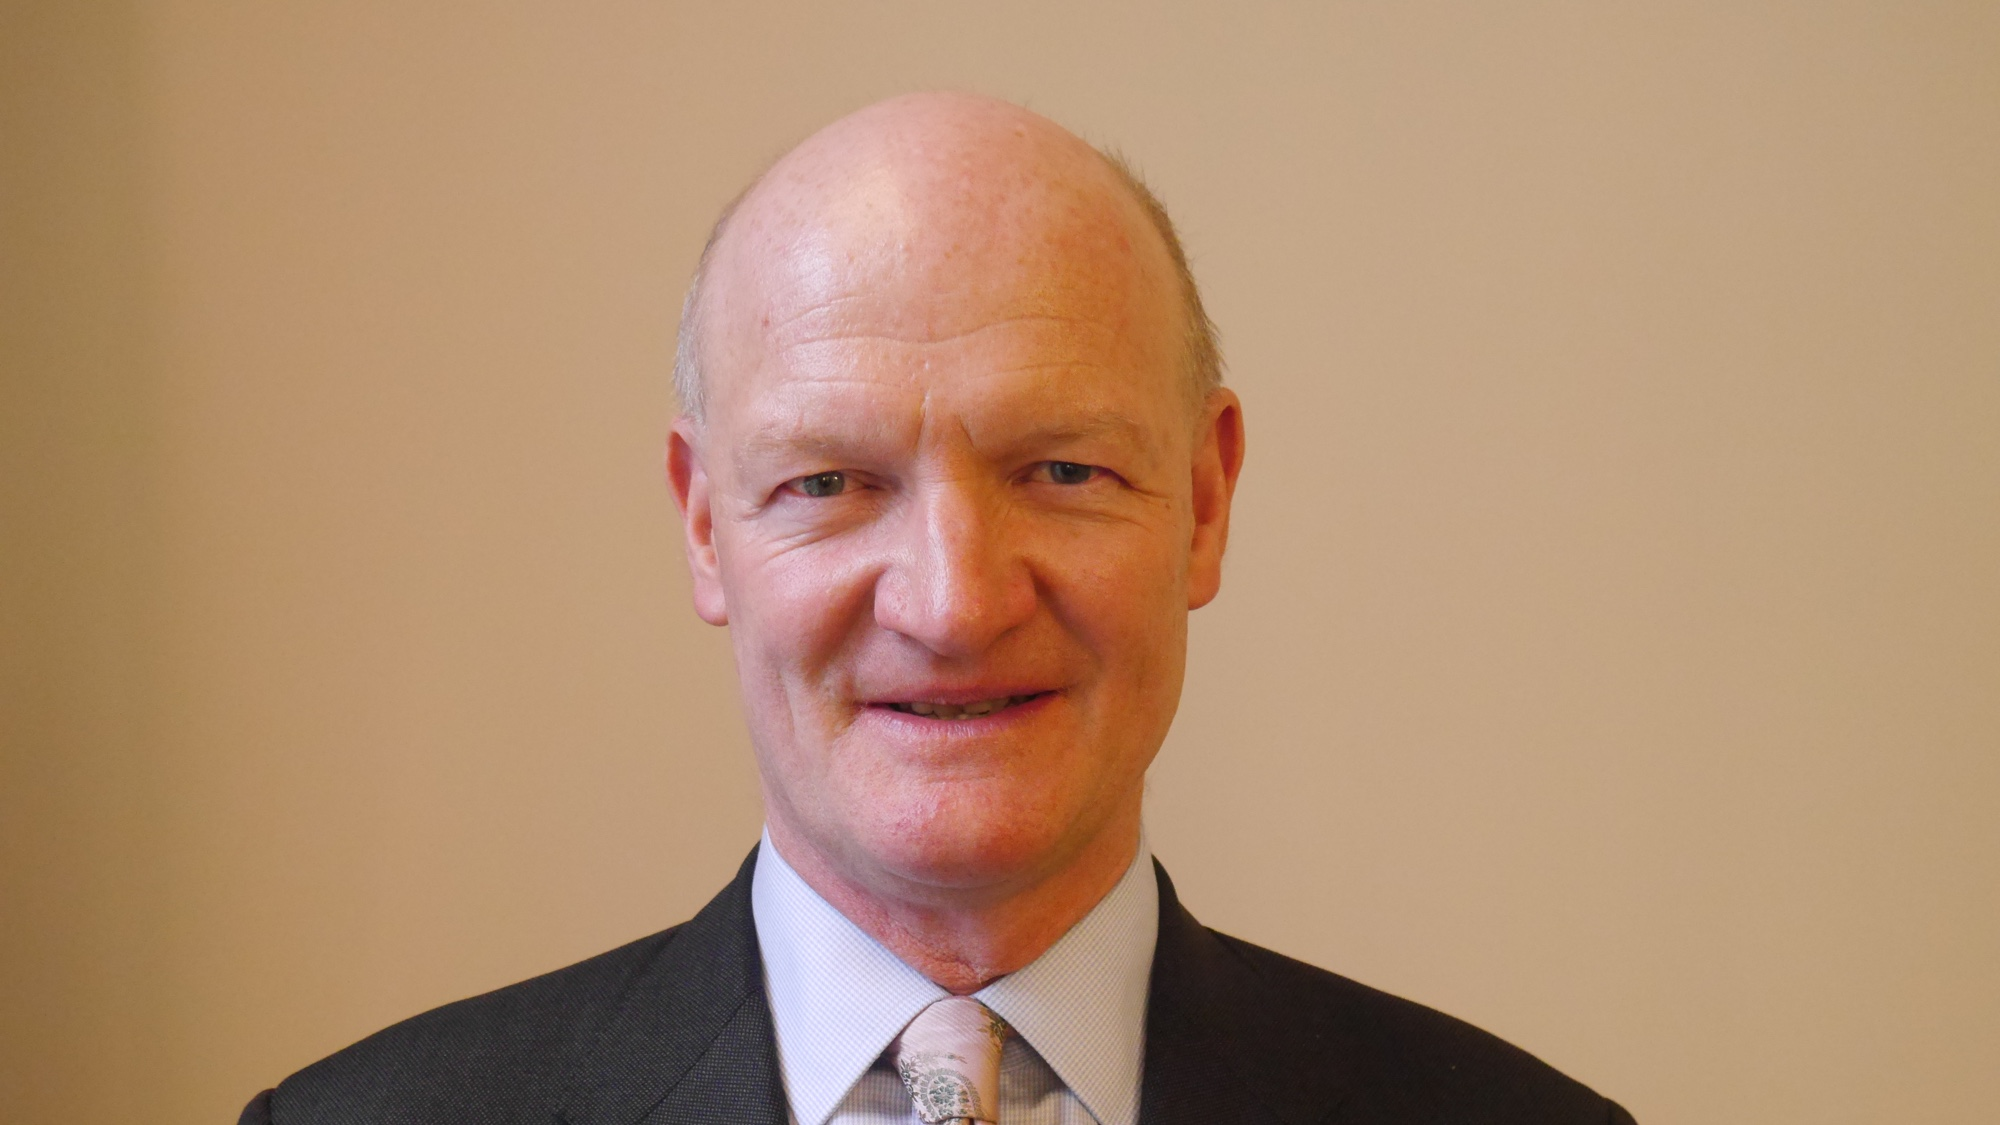 Profile photograph of The Rt Hon. the Lord Willetts